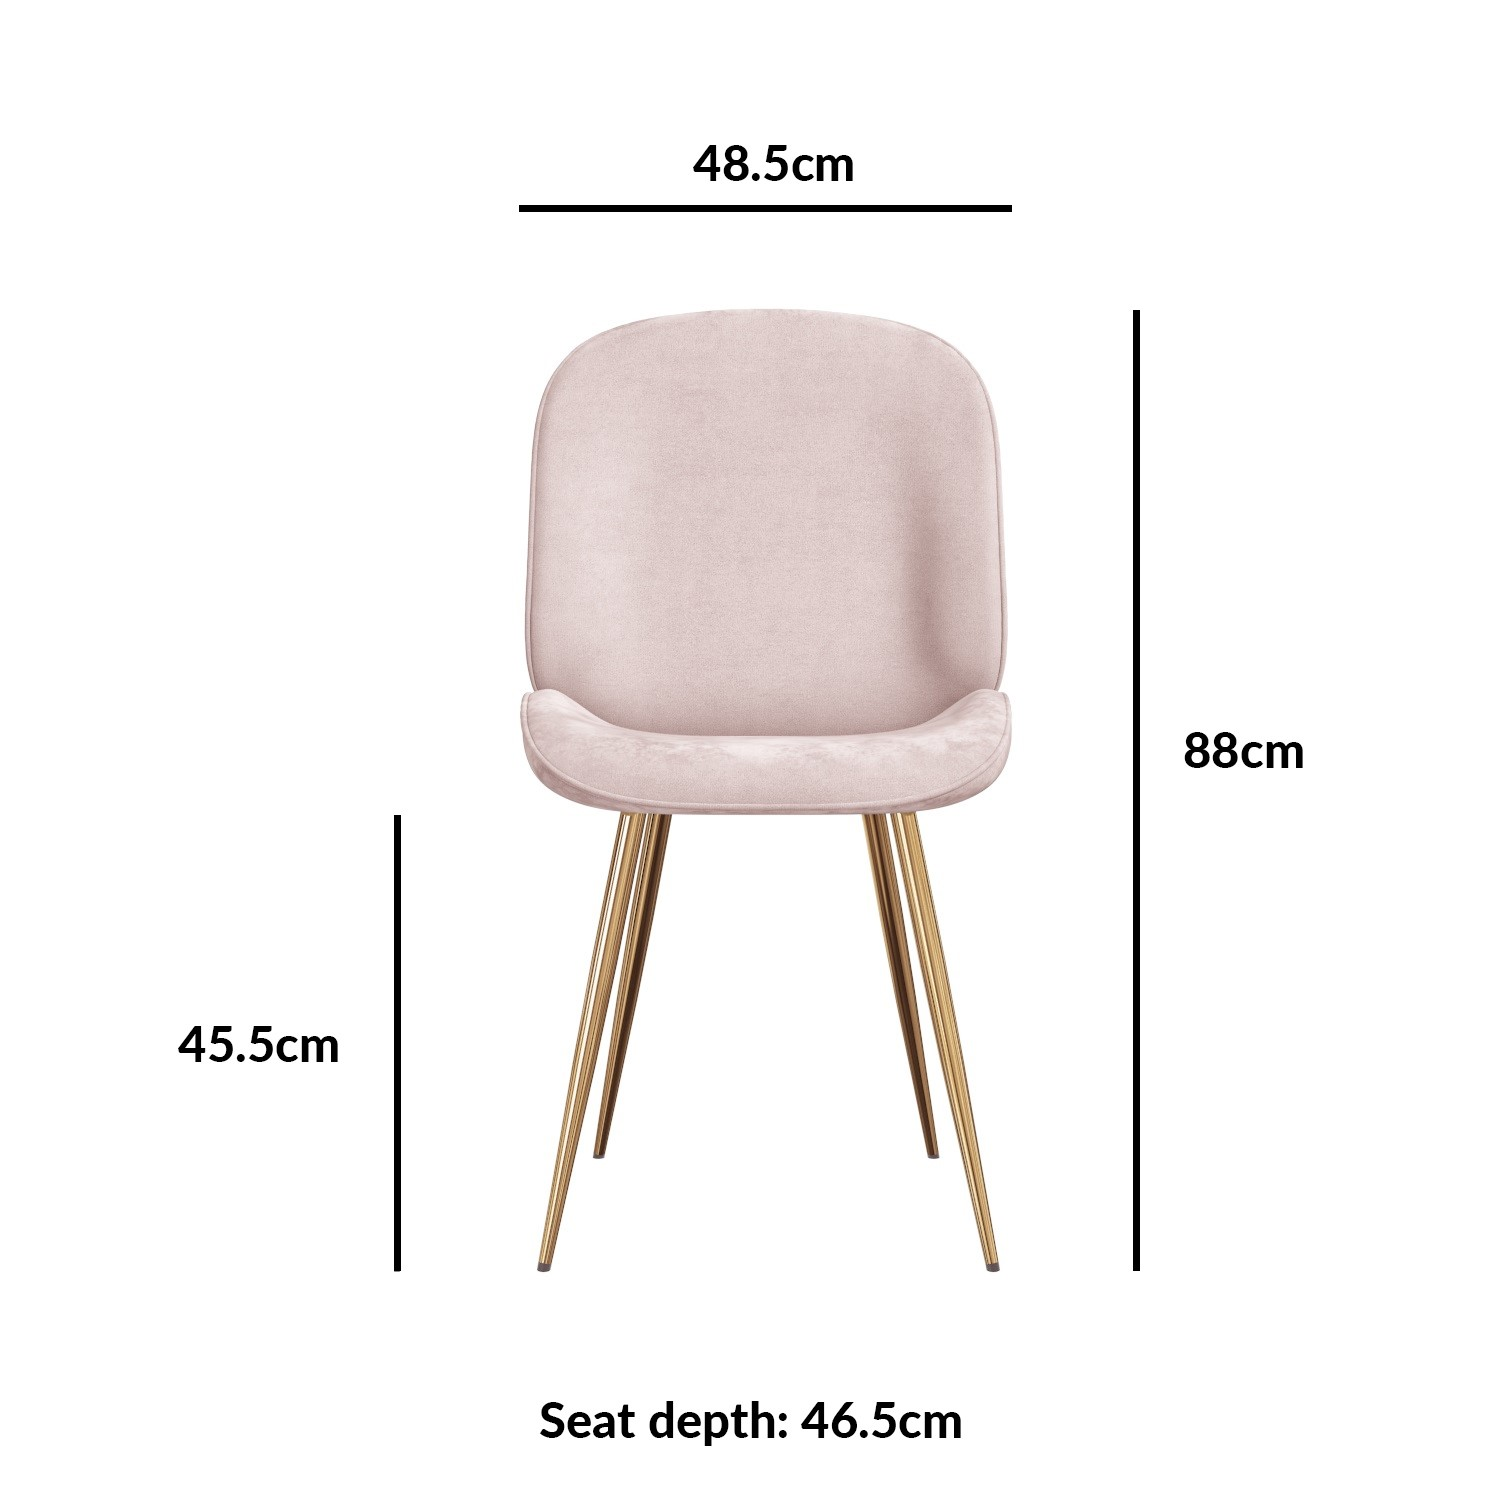 Set Of 2 Pink Velvet Dining Chairs With Gold Legs Jenna Furniture123